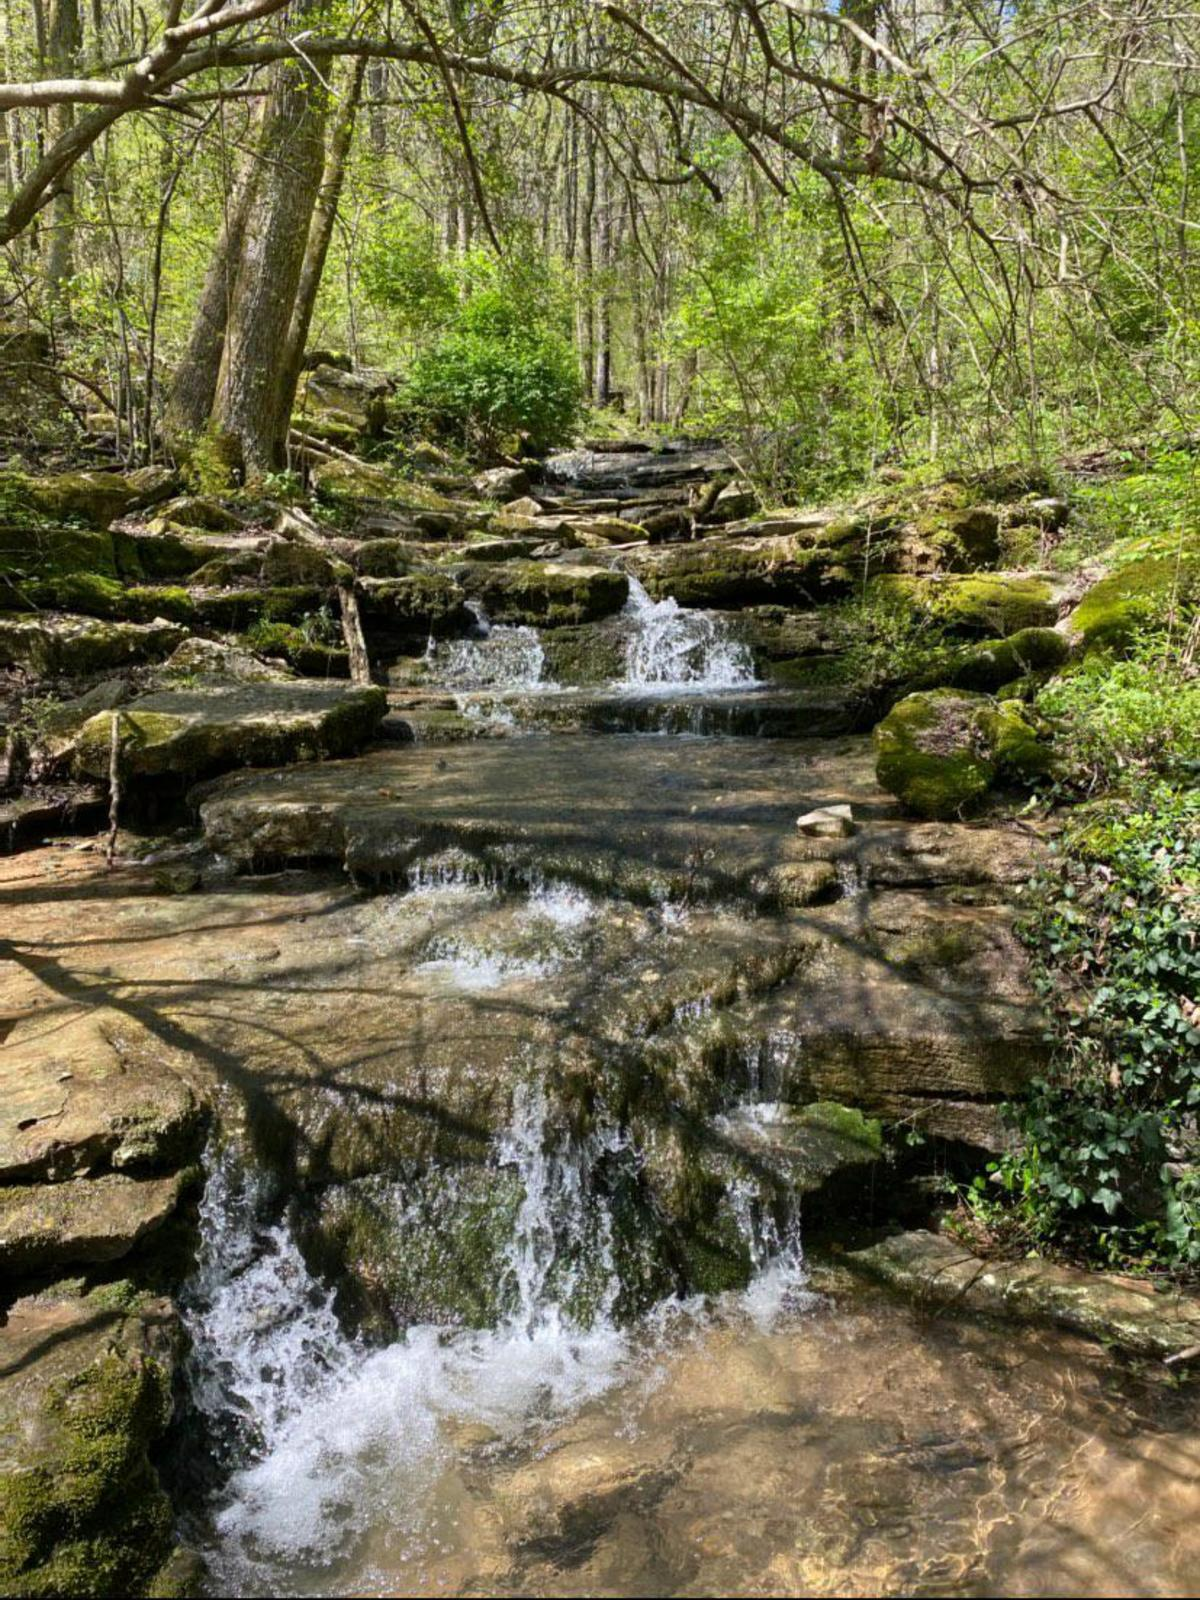 Waterfalls in Dallas Fanning Nature Preserve